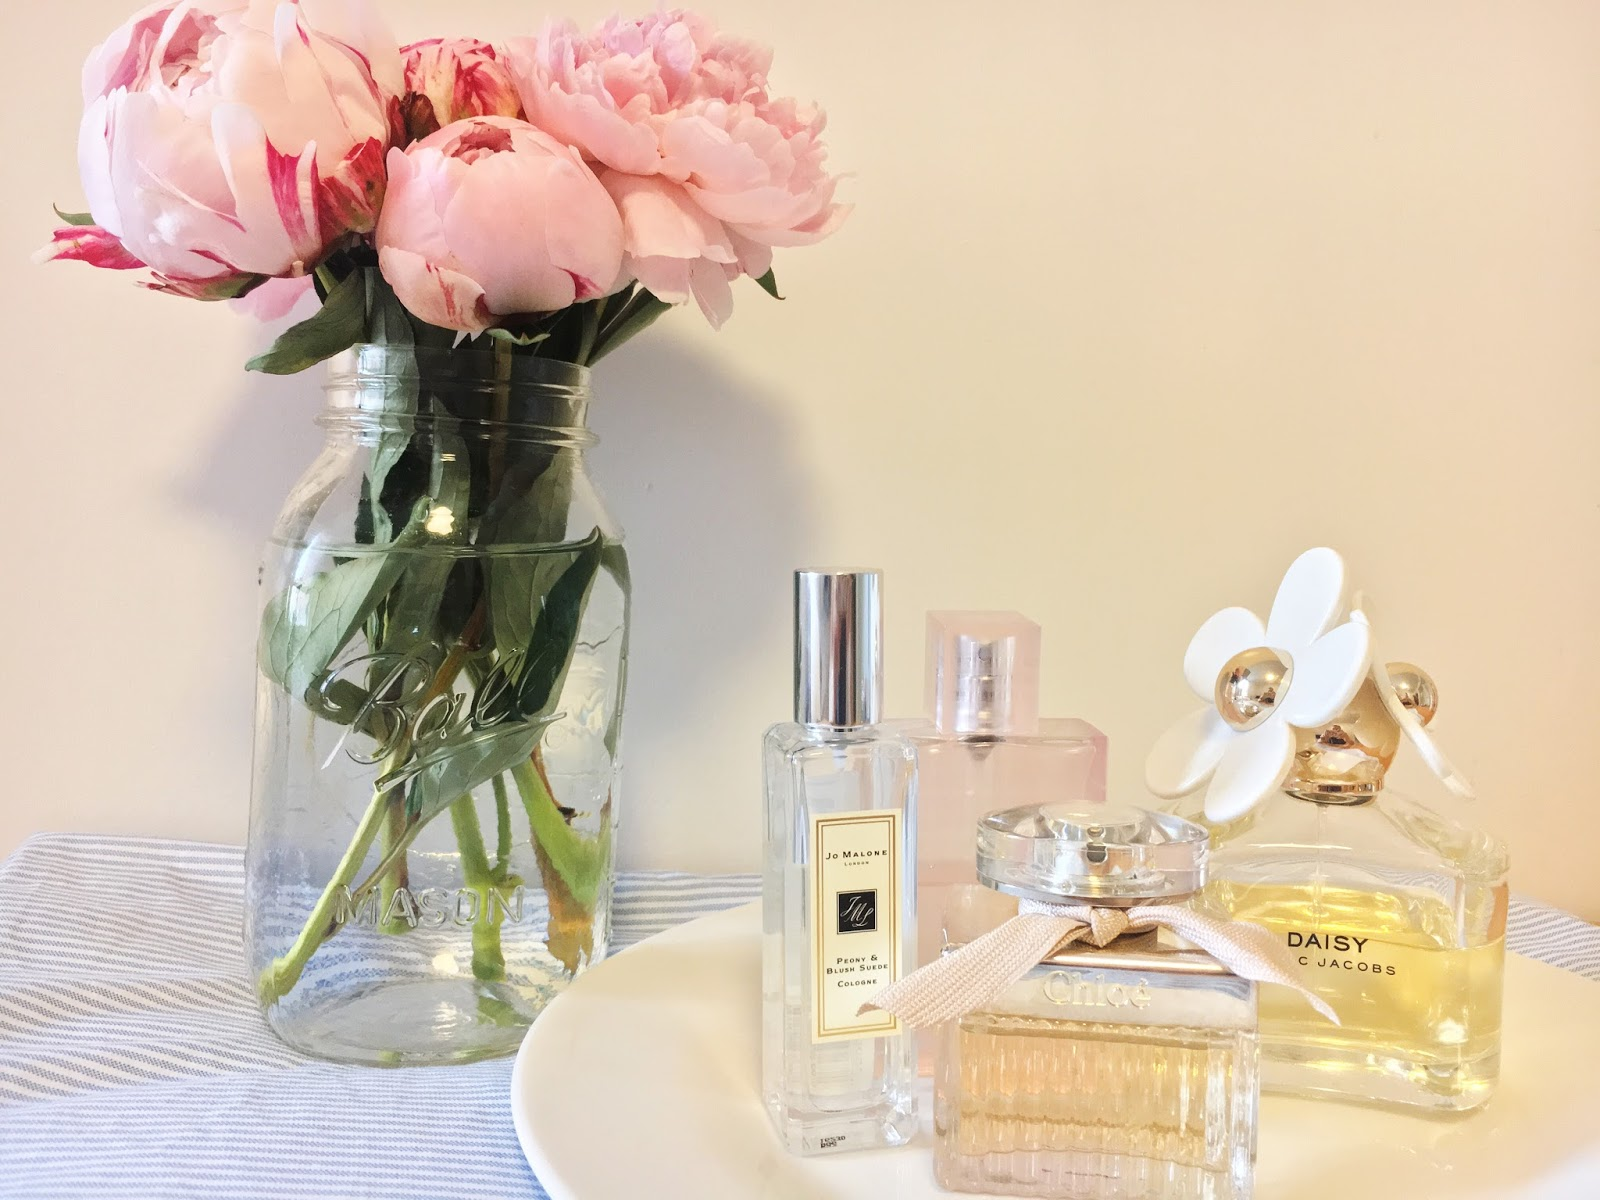 Style by annabeth sharing my favorite scents shop from left jo malone perfume burberry perfume chloe perfume daisy perfume izmirmasajfo Image collections